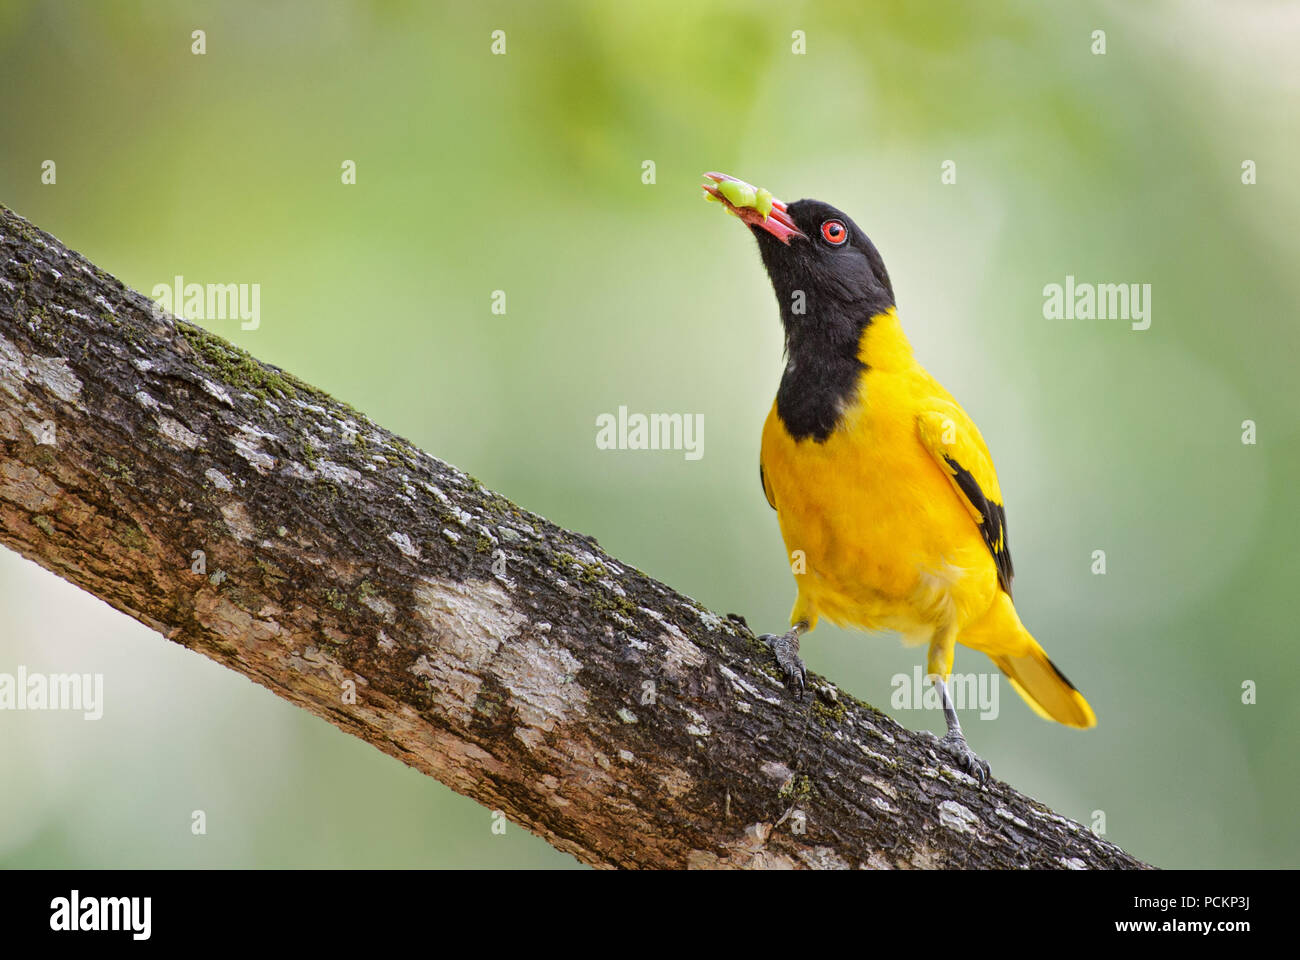 Indian Golden Oriole - Oriolus oriolus kundoo, beautiful yellow and black bird from Asian forests and woodlands, Sri Lanka. - Stock Image